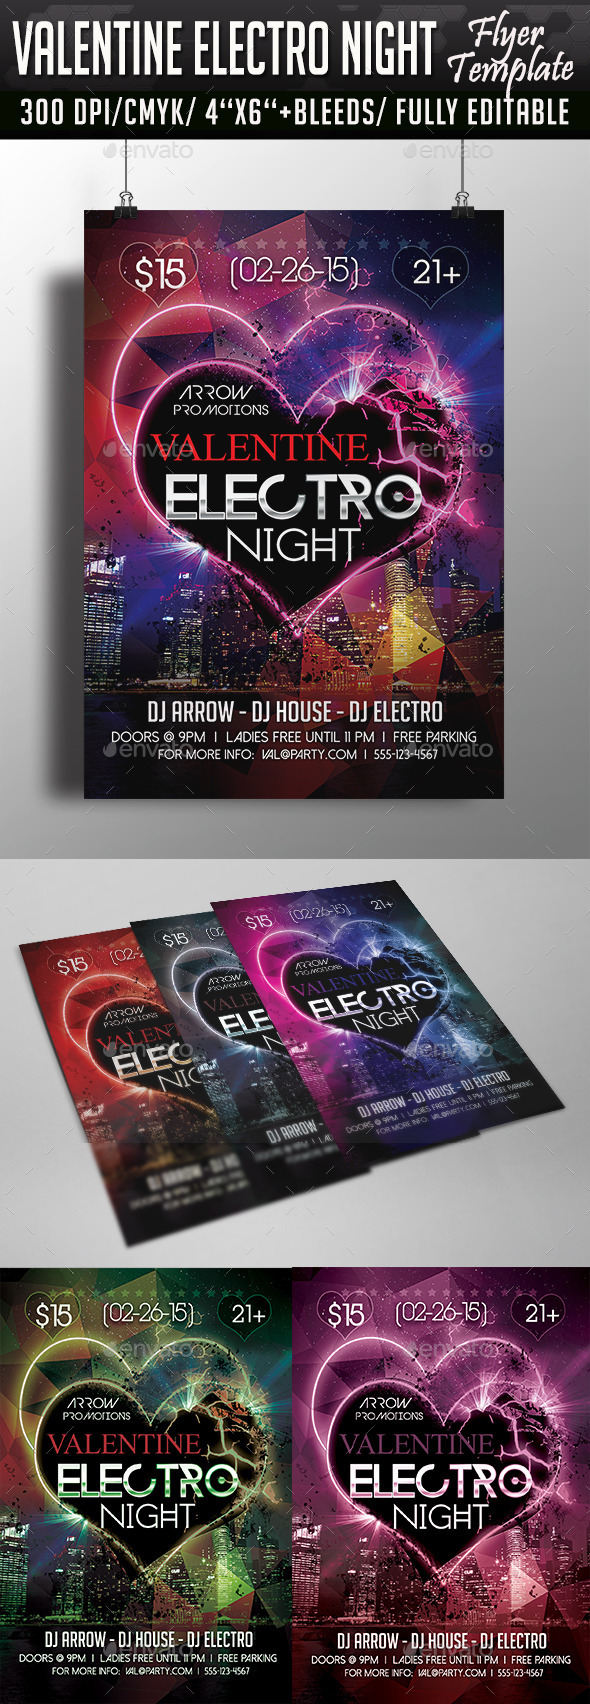 Valentine Electro Night Flyer Template - Clubs & Parties Events